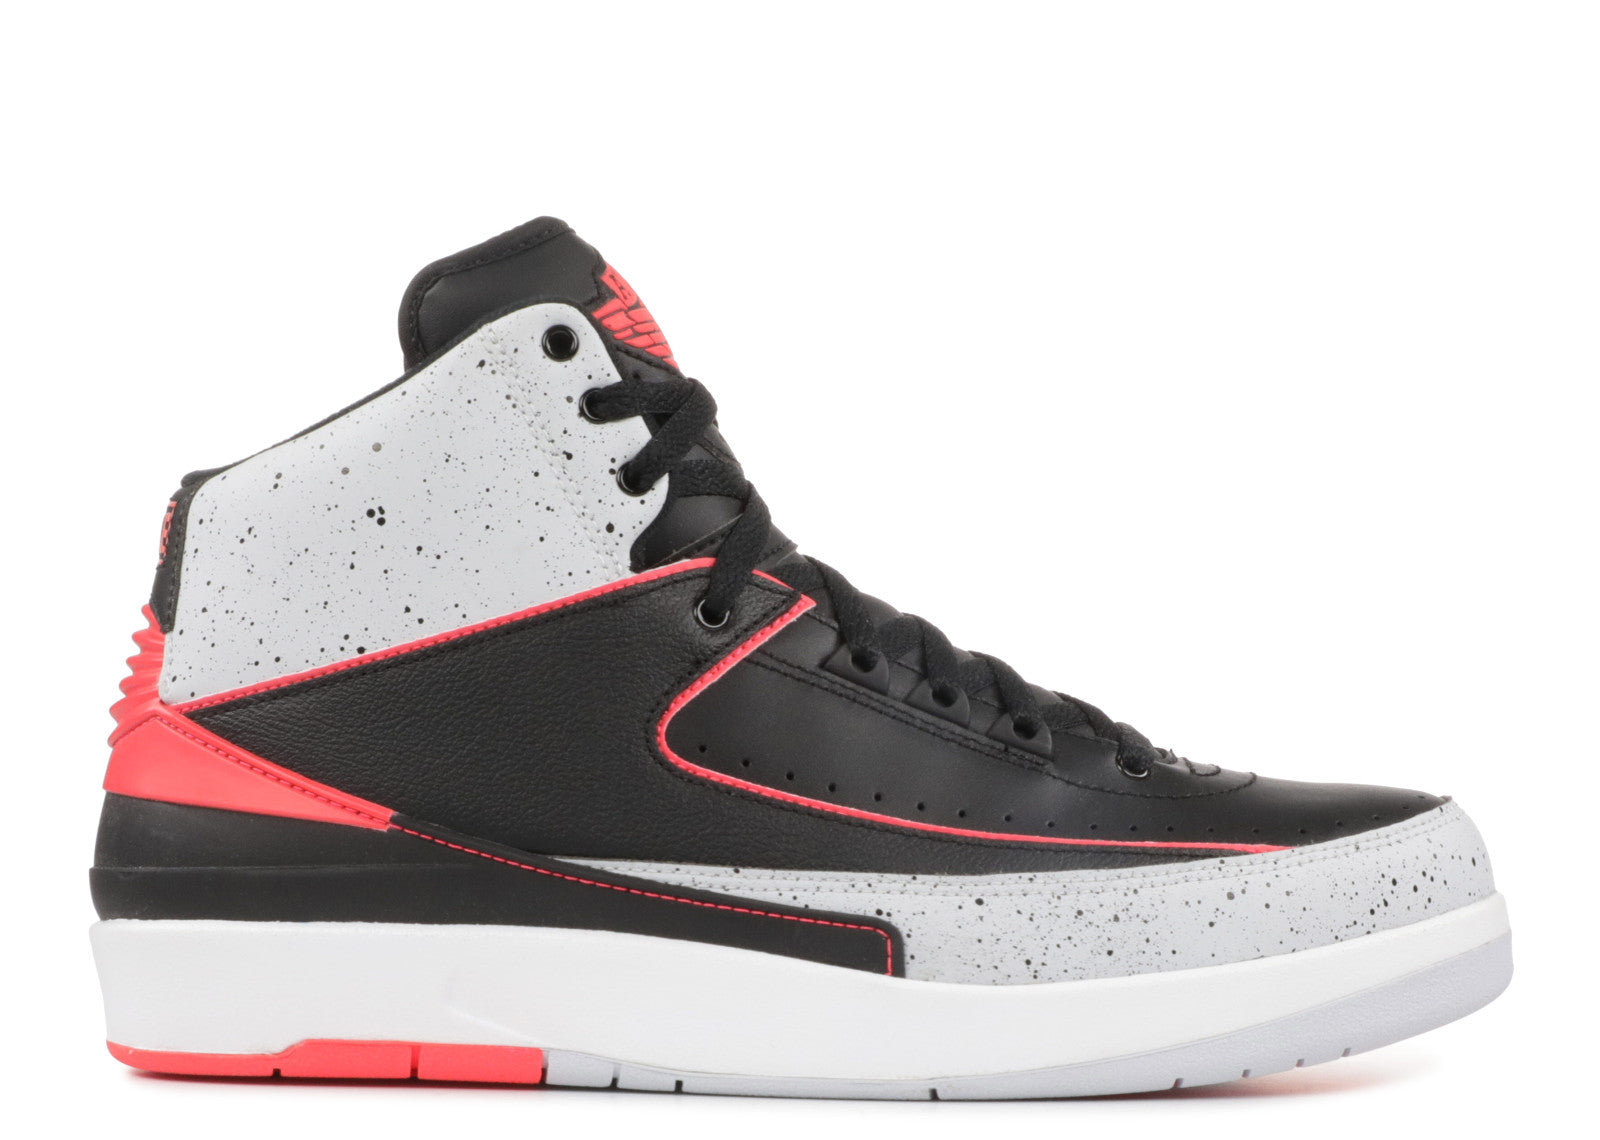 reputable site 3bb48 b8dc3 Air Jordan 2 Retro Infrared